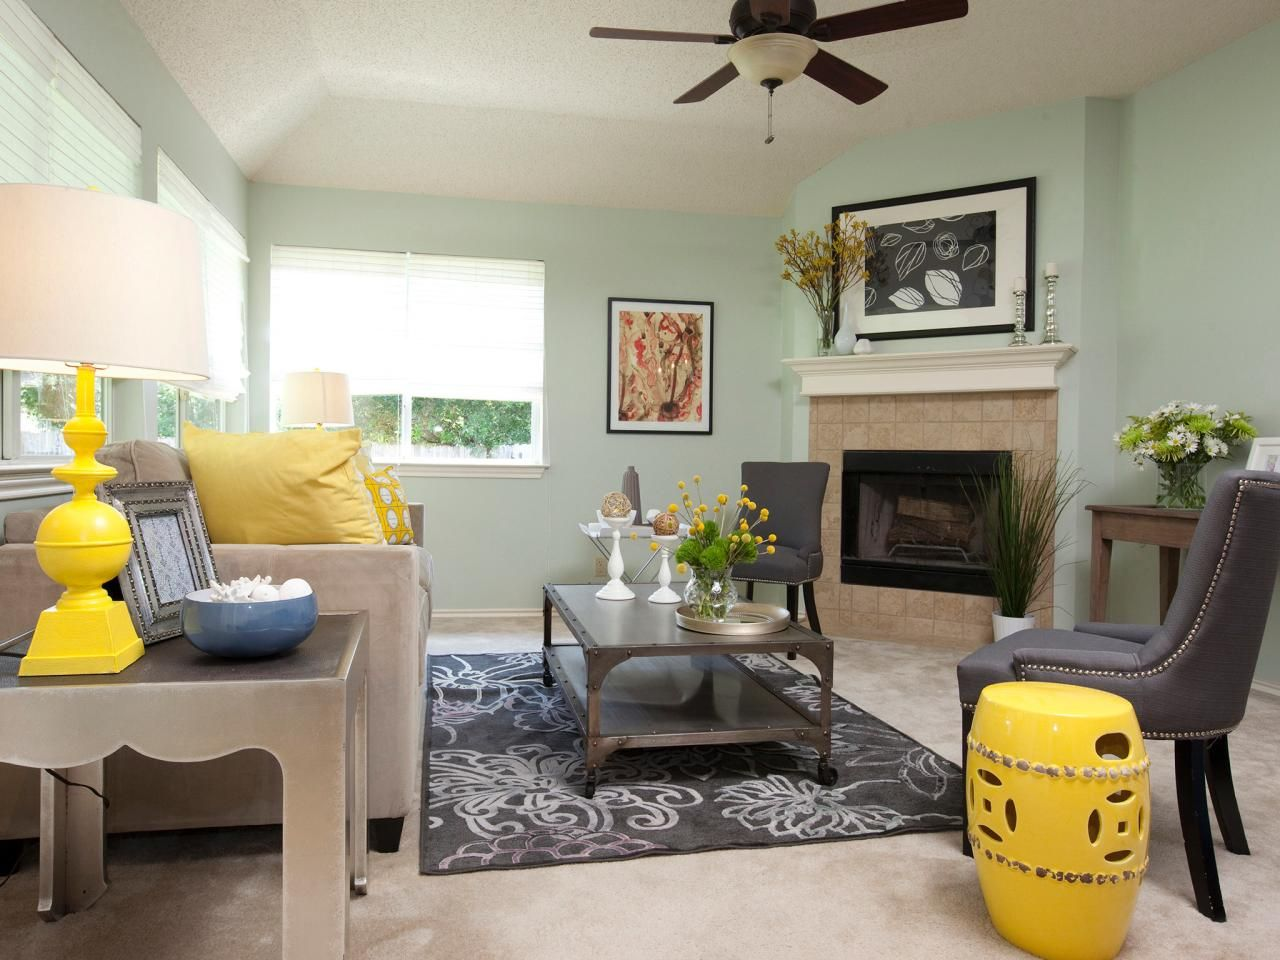 Living Room Decorating Ideas Mint Green gray furniture with yellow accents liven up this living room with